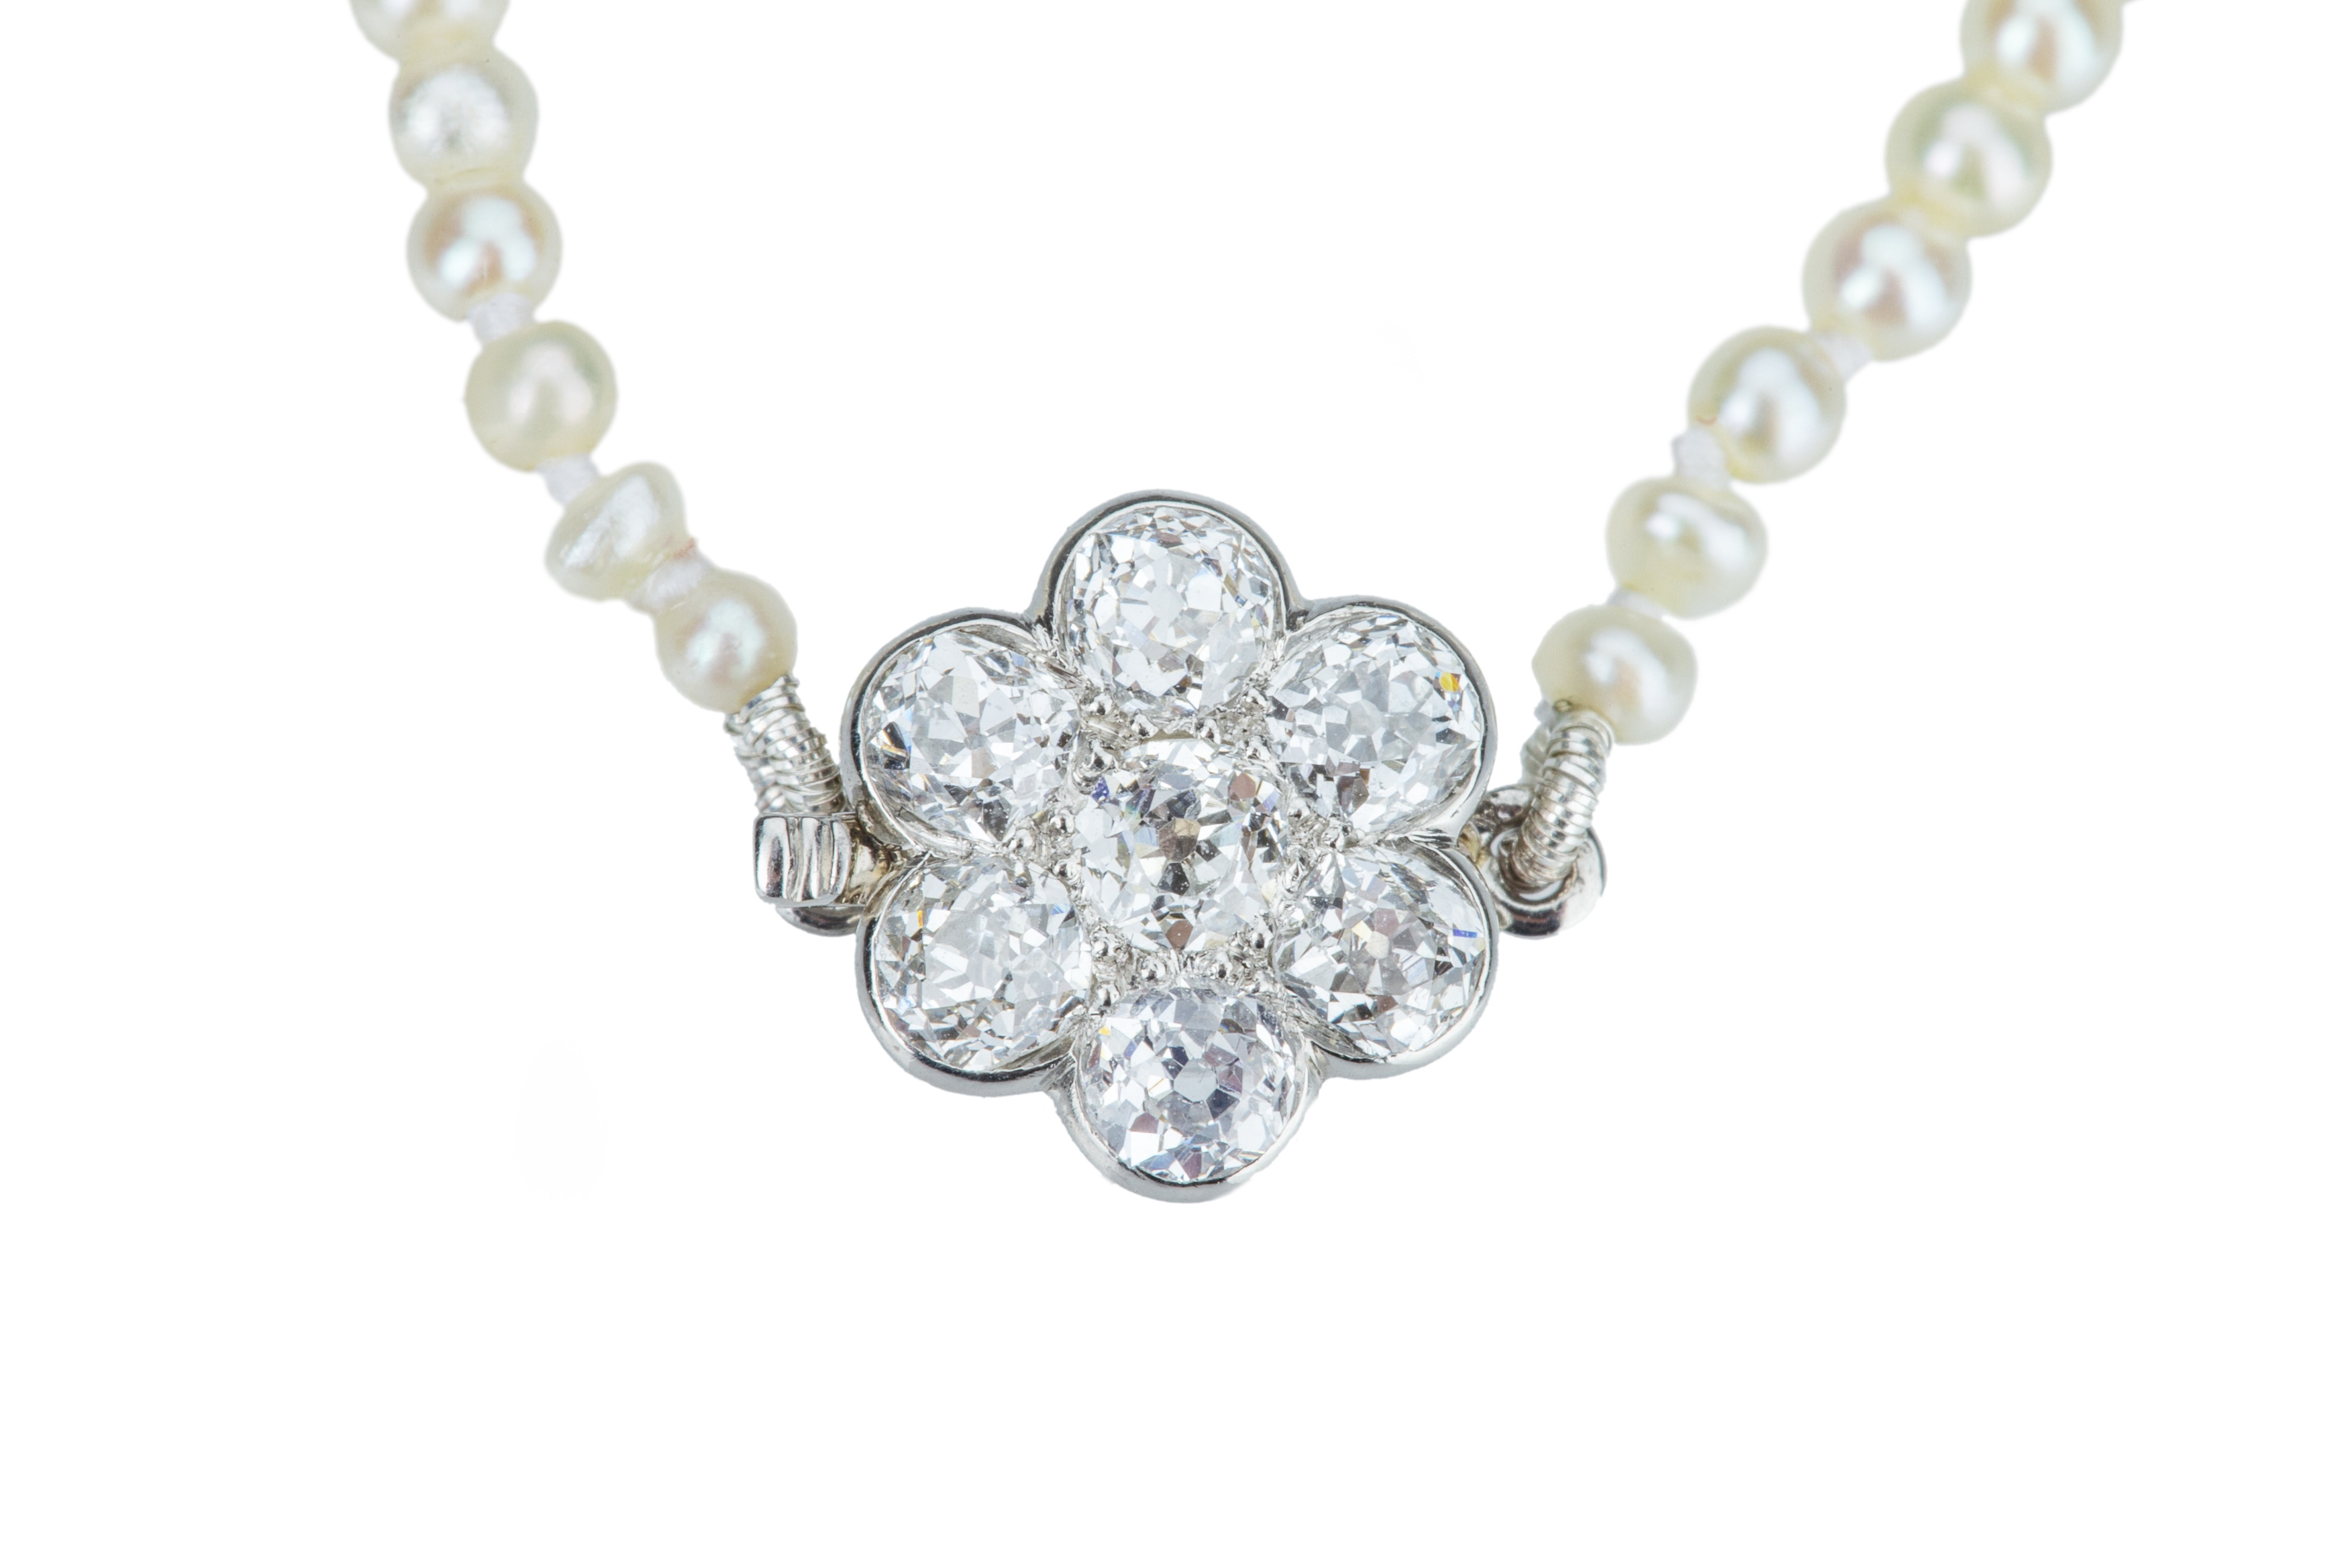 An early 20th century natural pearl necklace.